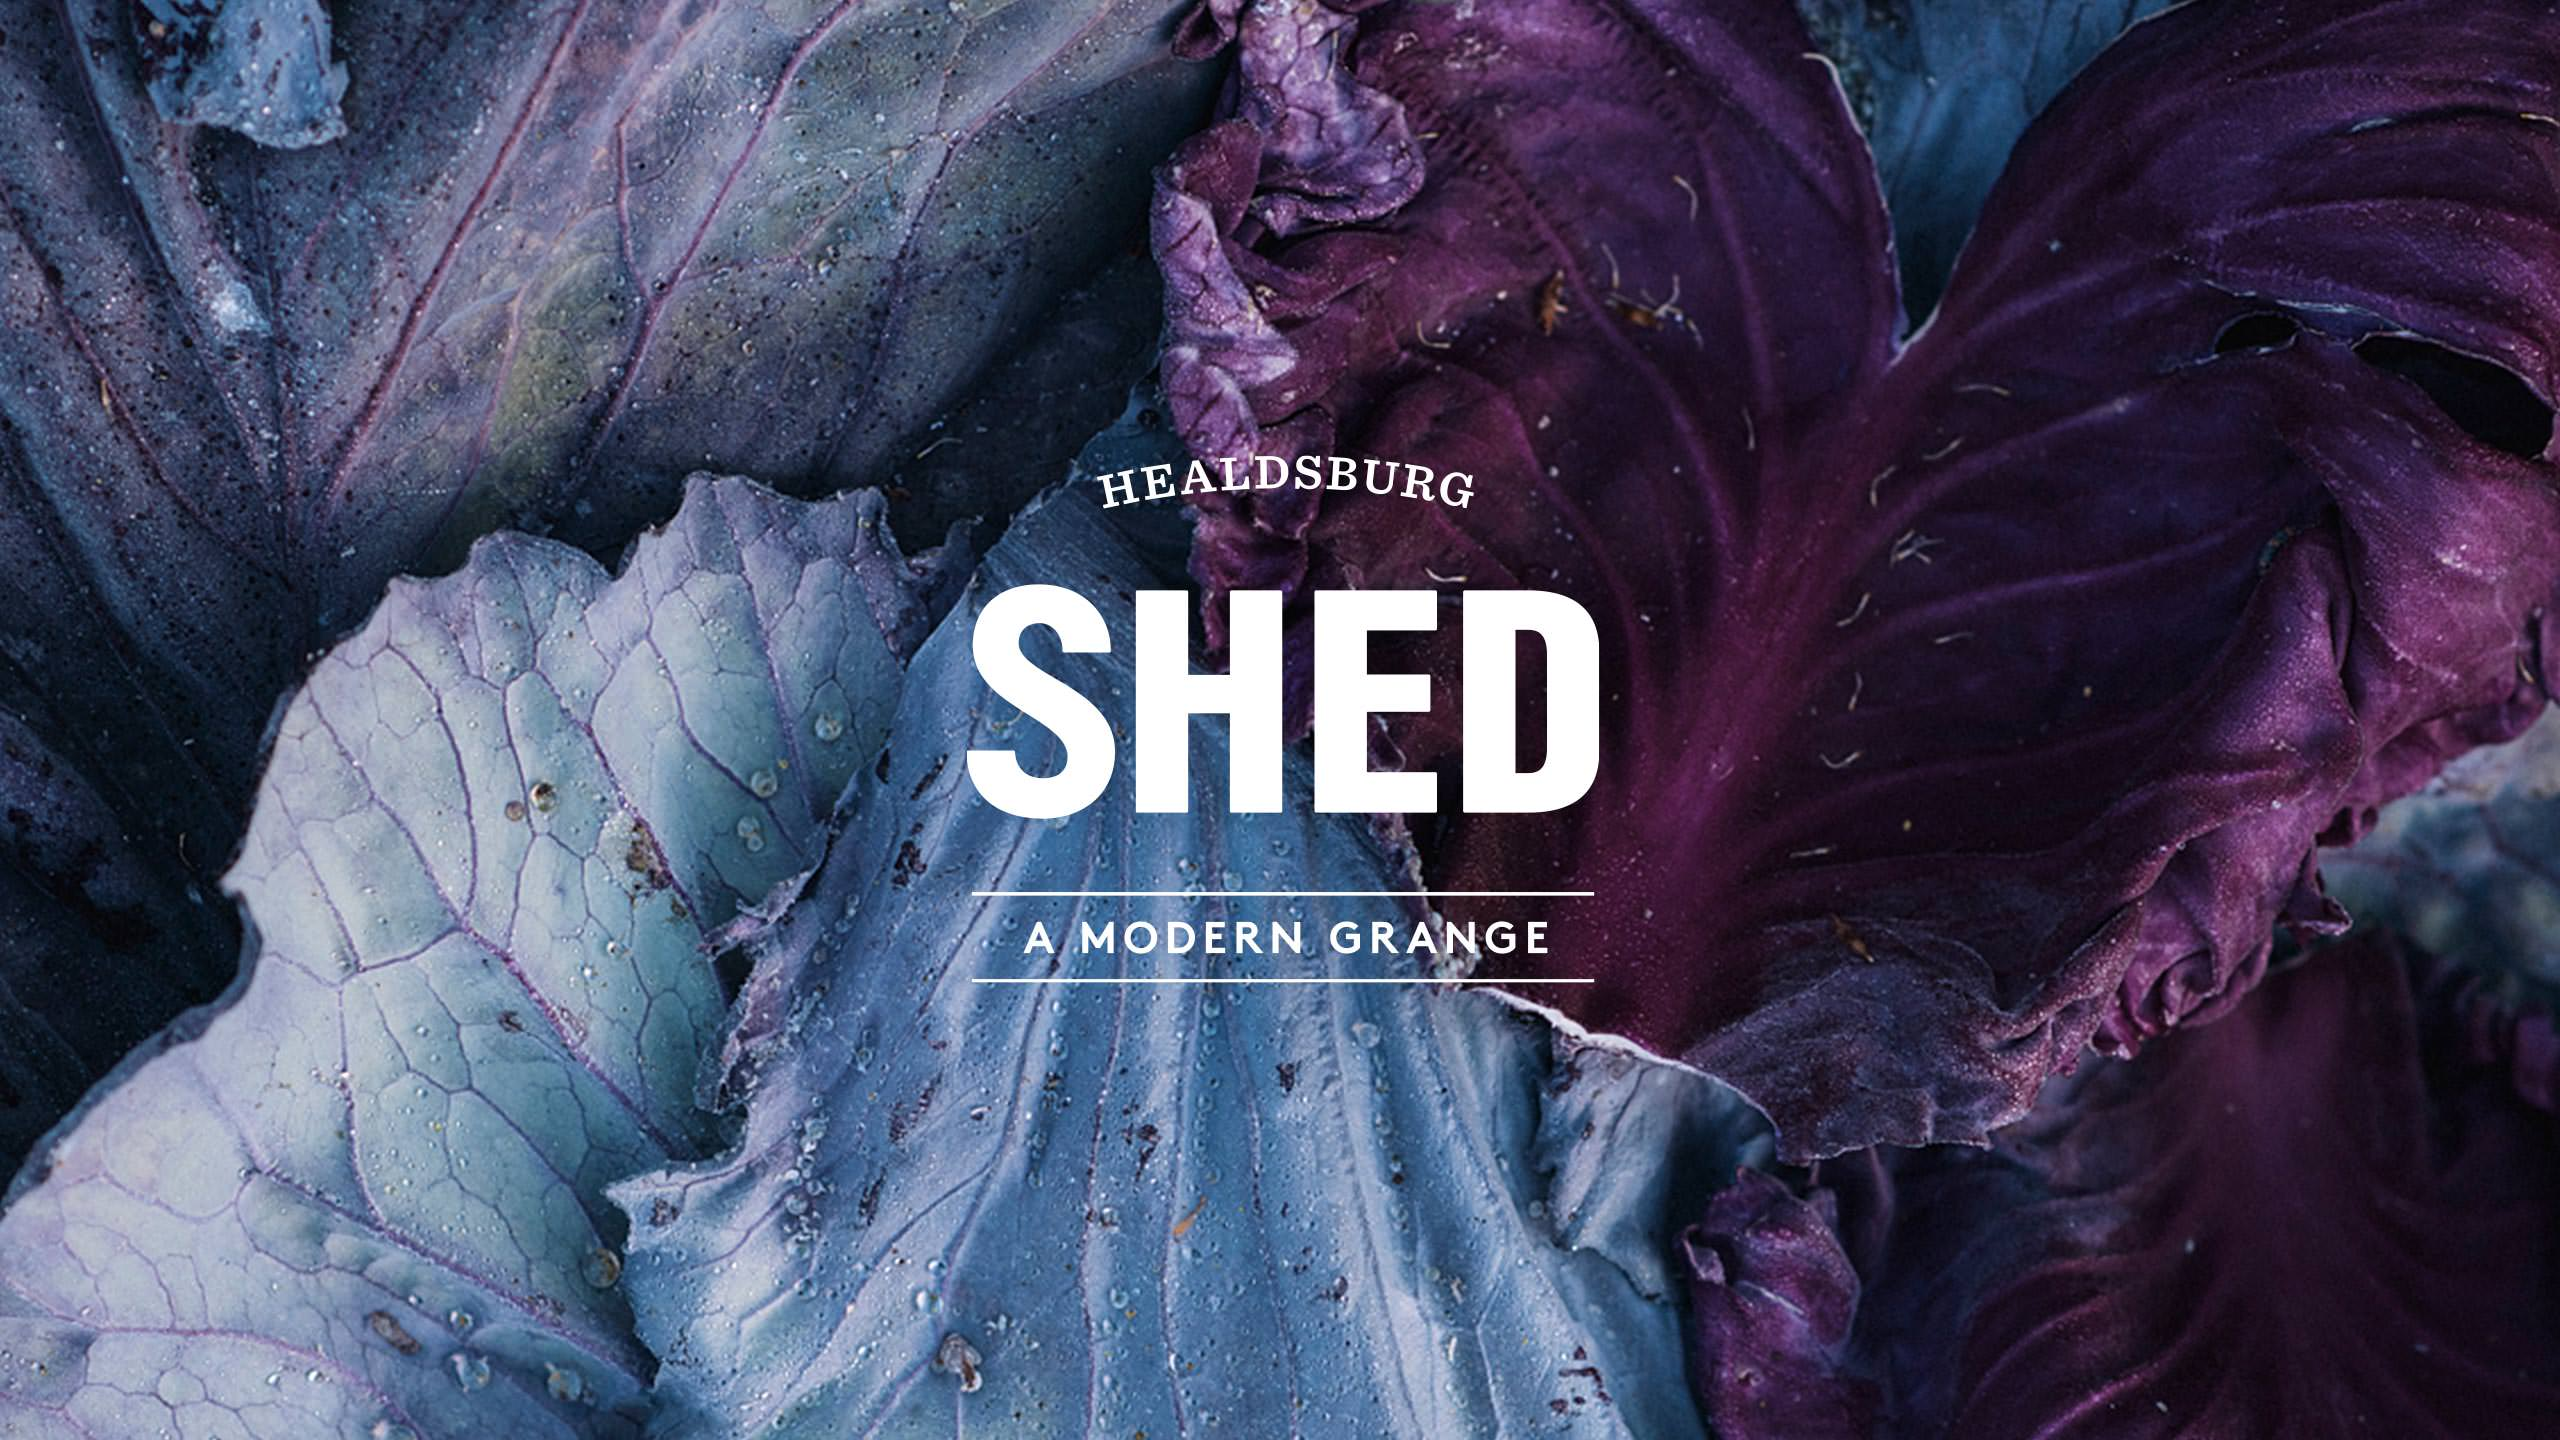 SHED Brand Identity with Purple Cabbage image in background